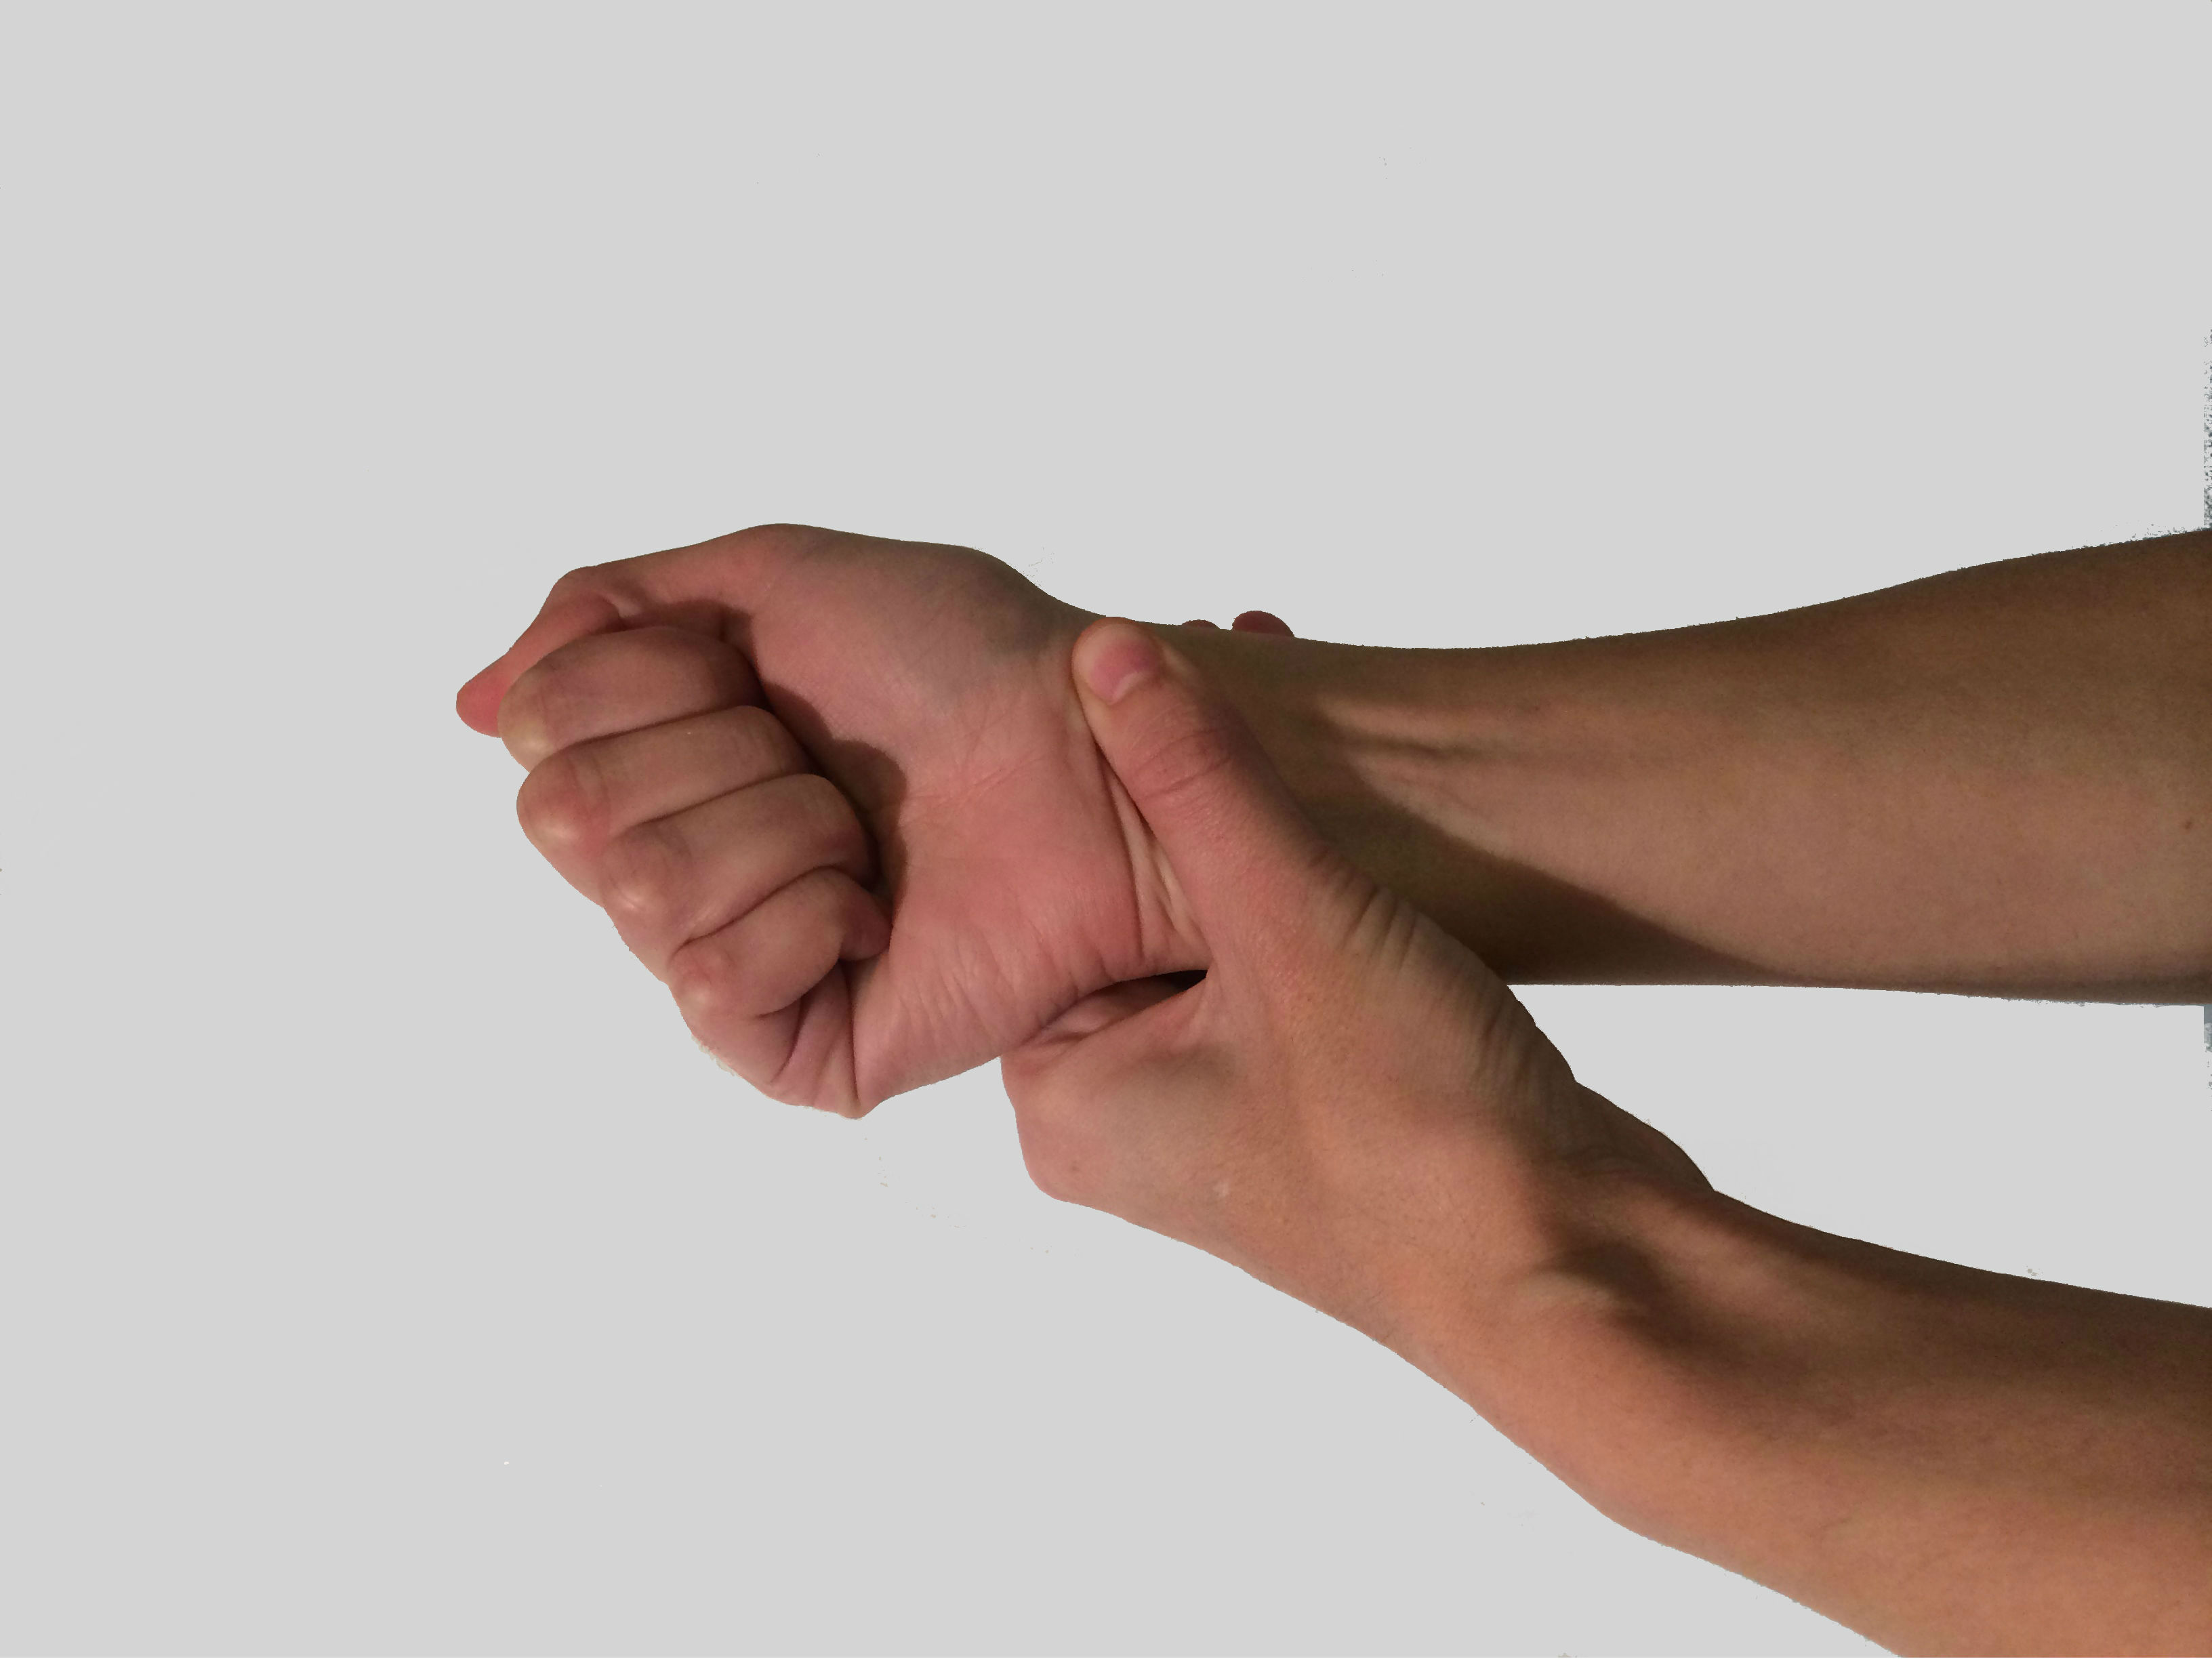 Most people assume that wrist pain is more problematic in age or due to an acute sports injury. Yet, it's becoming increasingly common in younger people because of smartphone usage and computers.